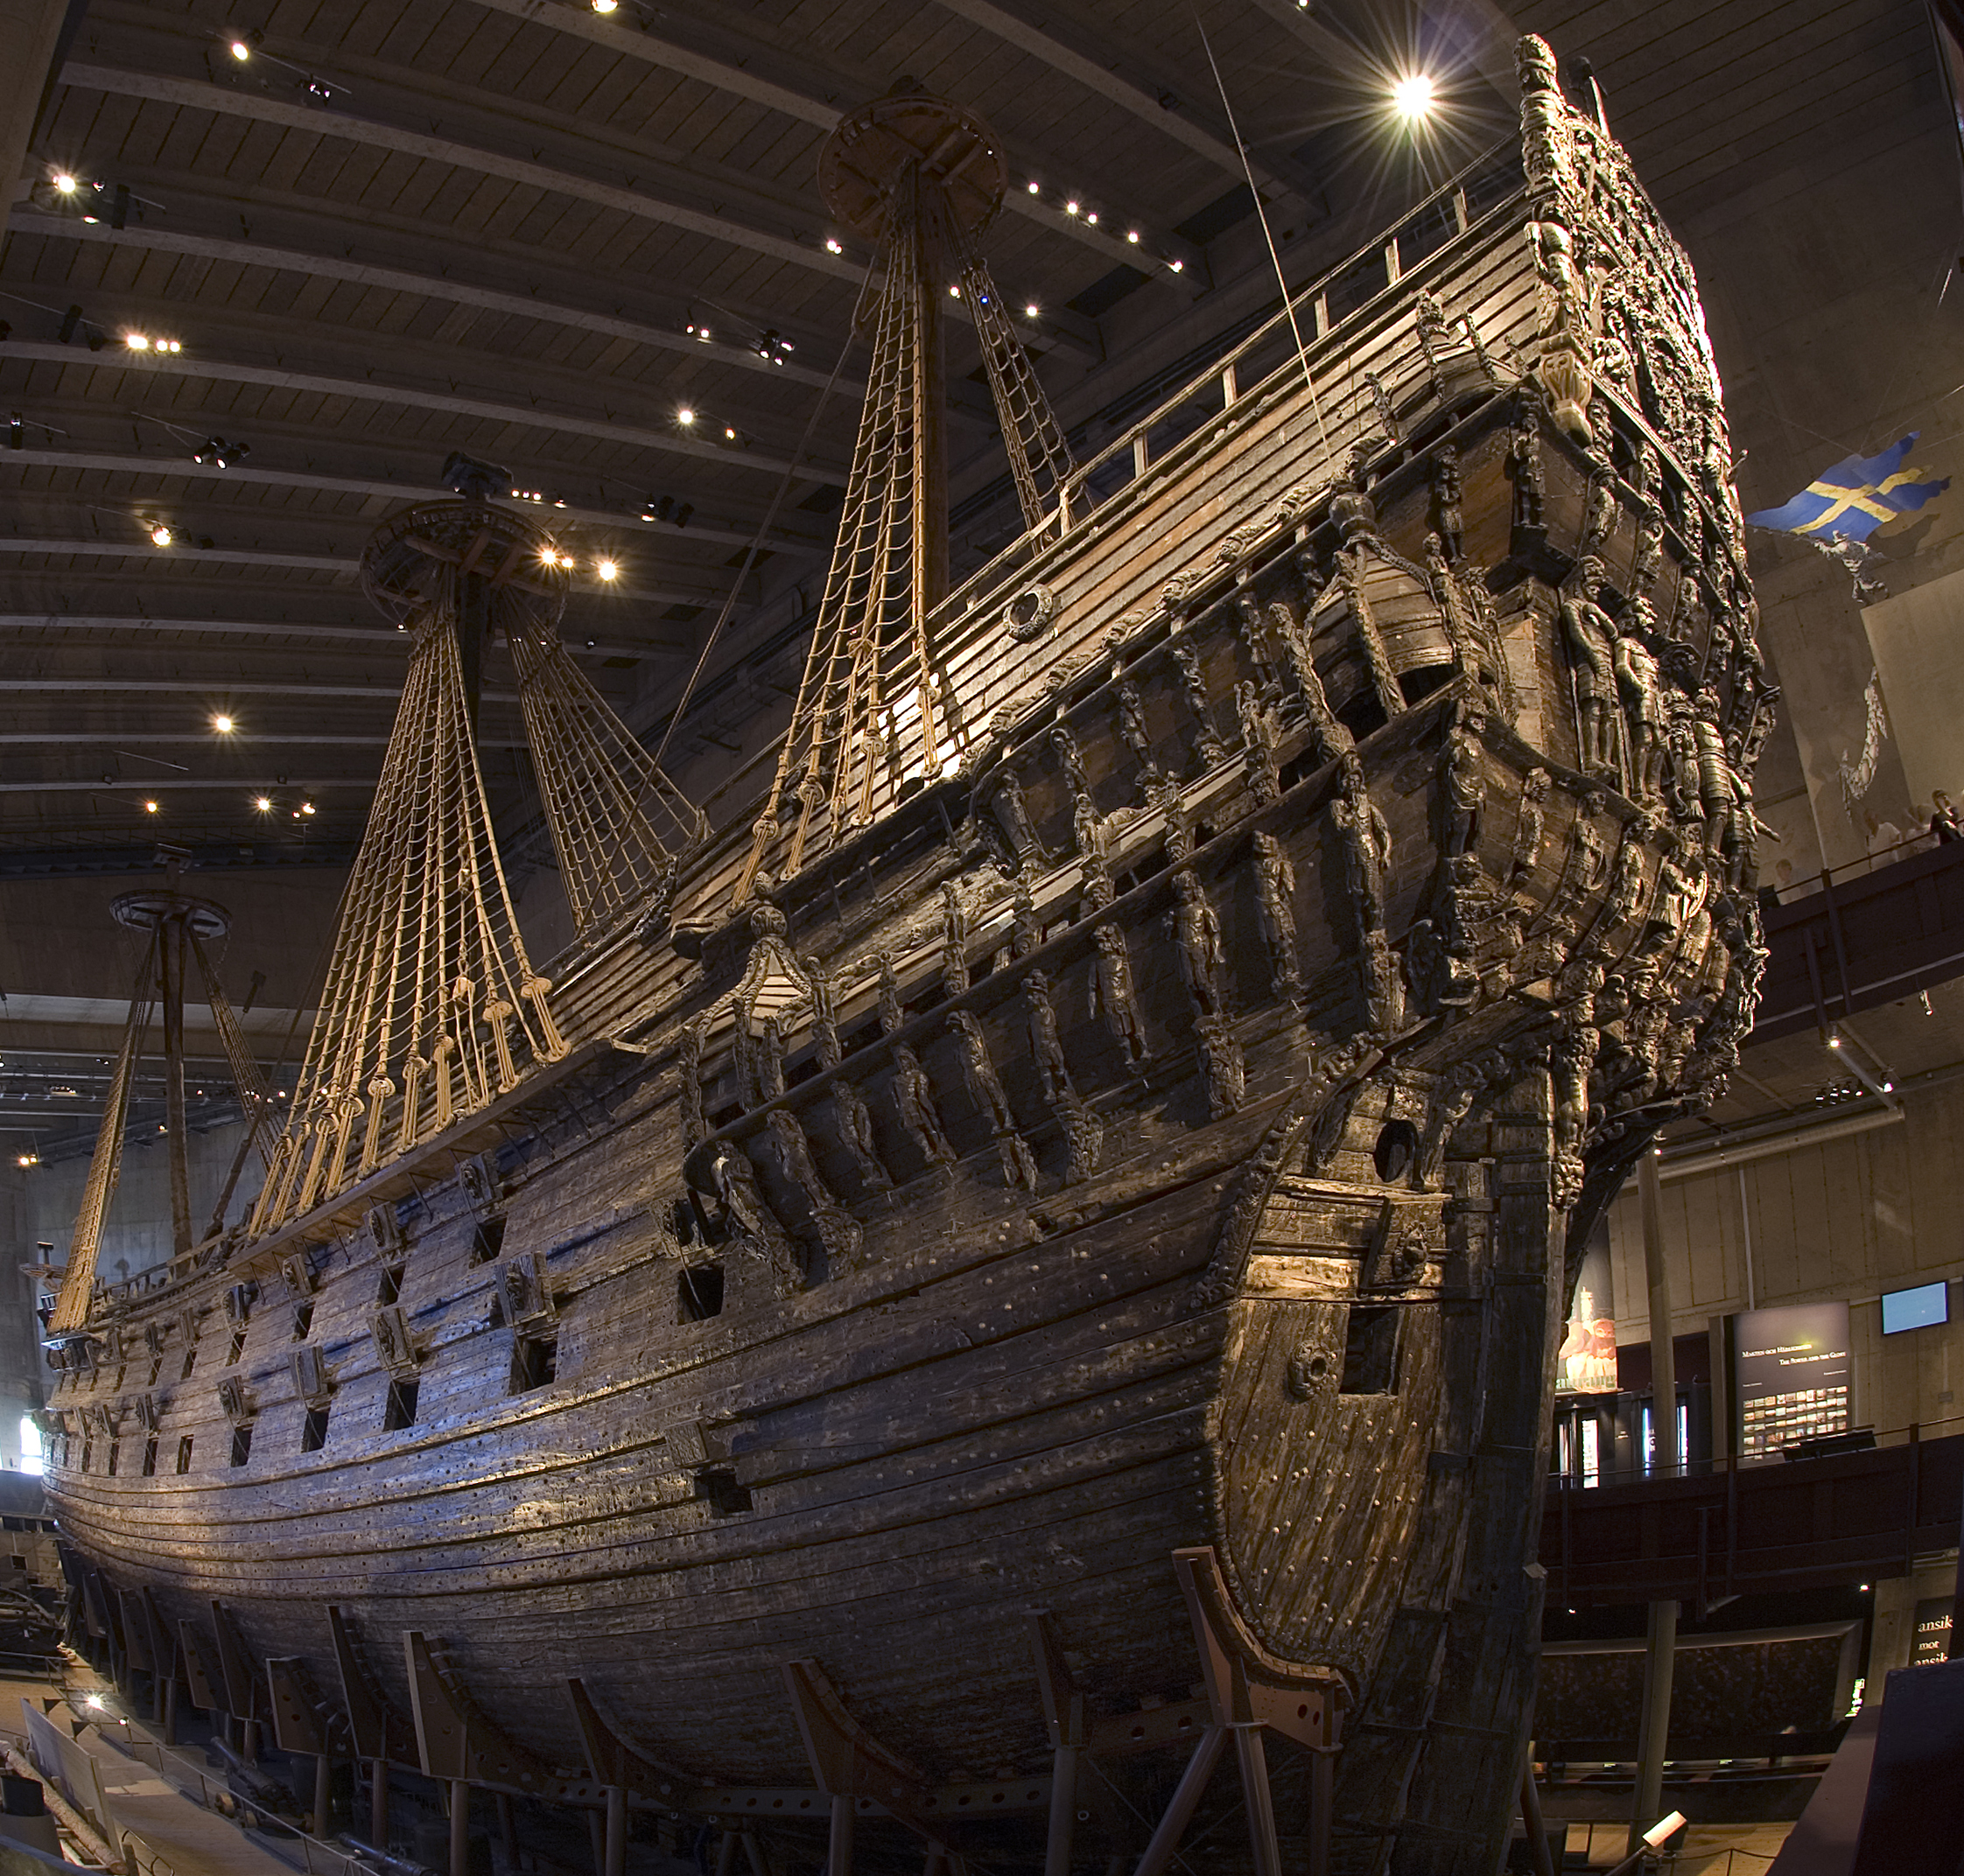 https://i1.wp.com/www.thehistoryblog.com/wp-content/uploads/2014/10/The_Vasa_ship_-02-.jpg